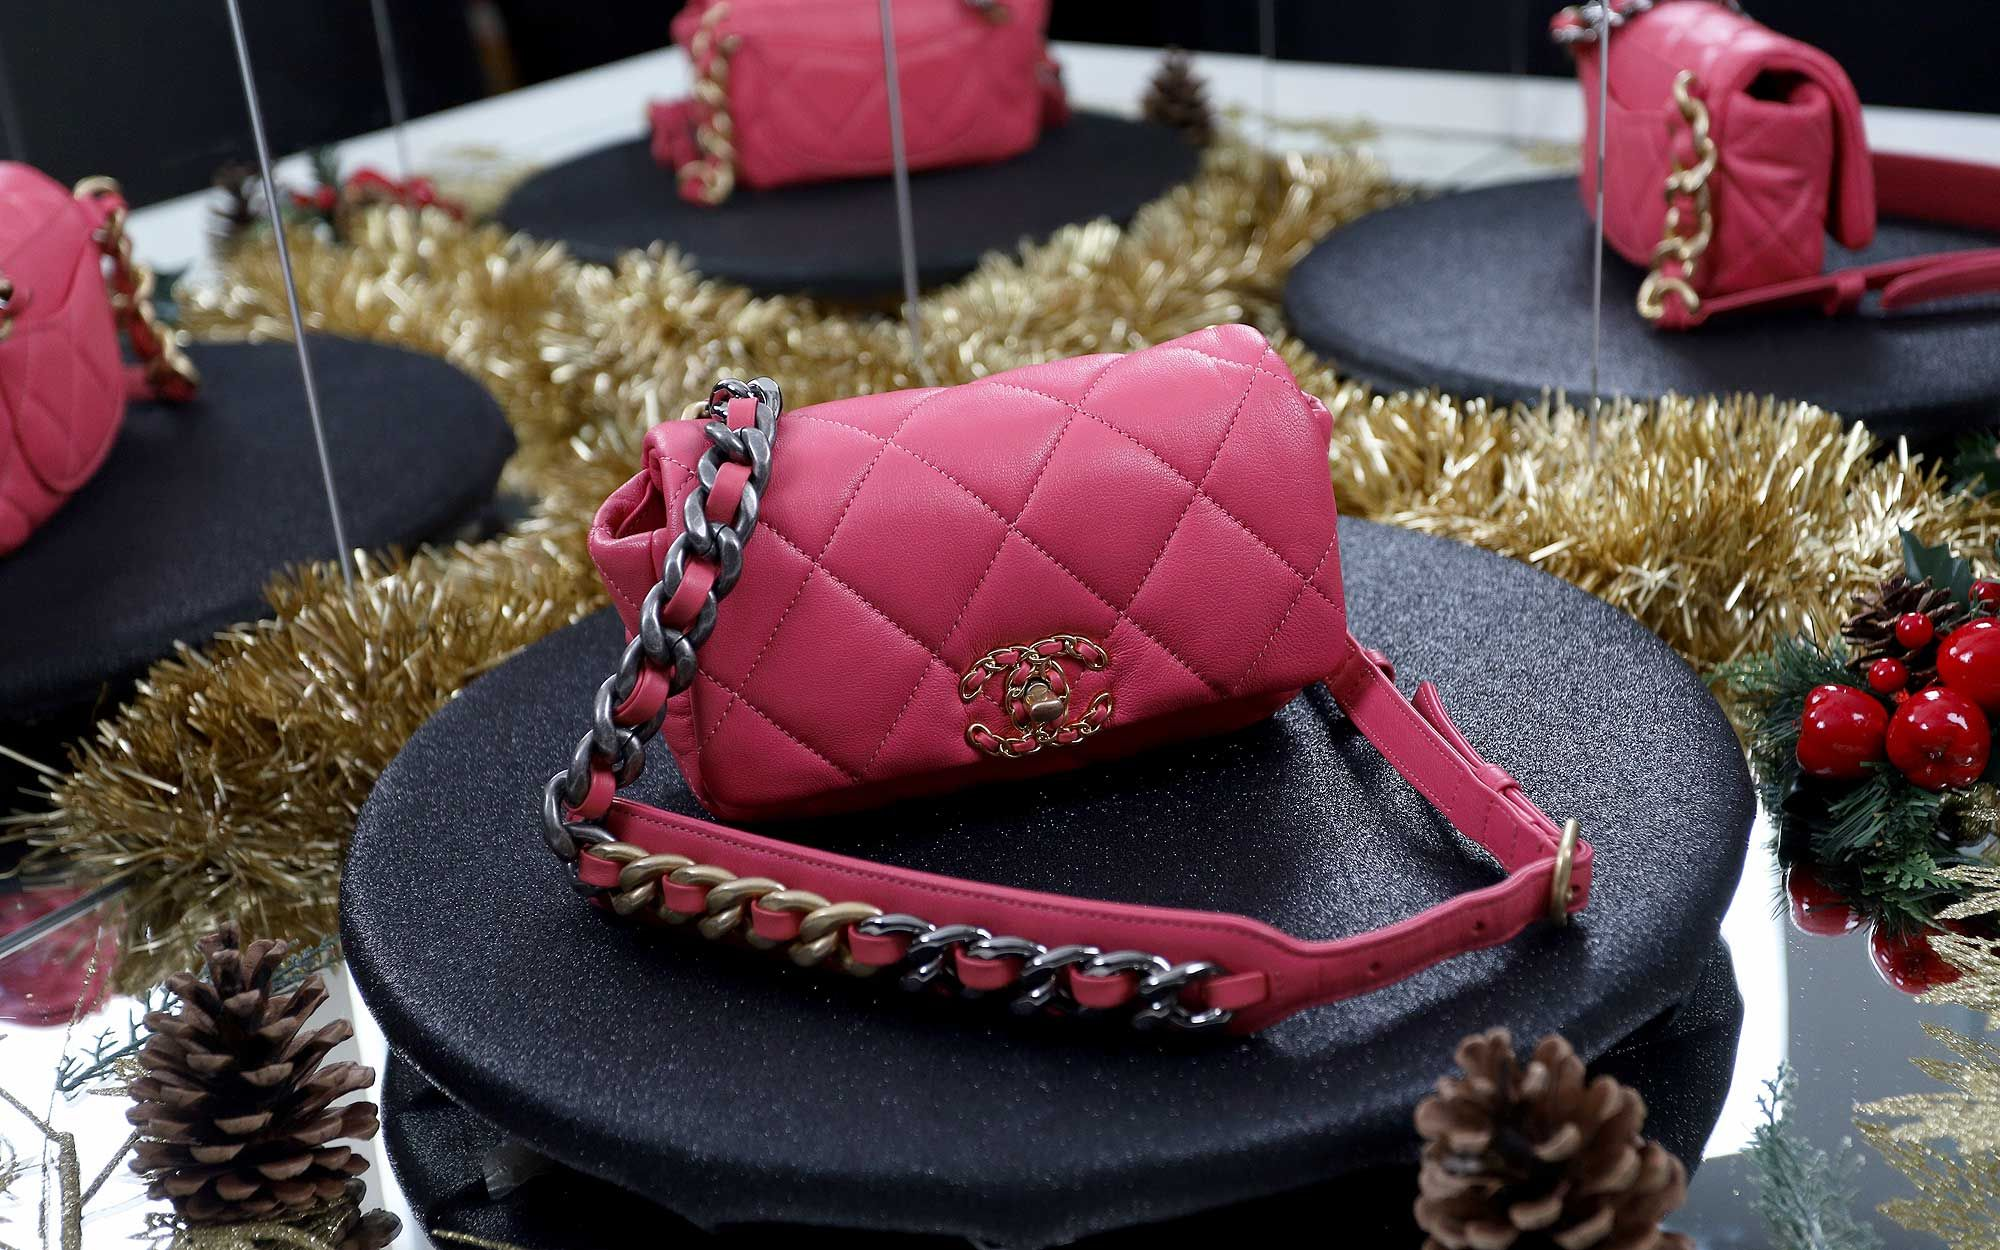 Let Chanel Bring A Little Sparkle This Christmas